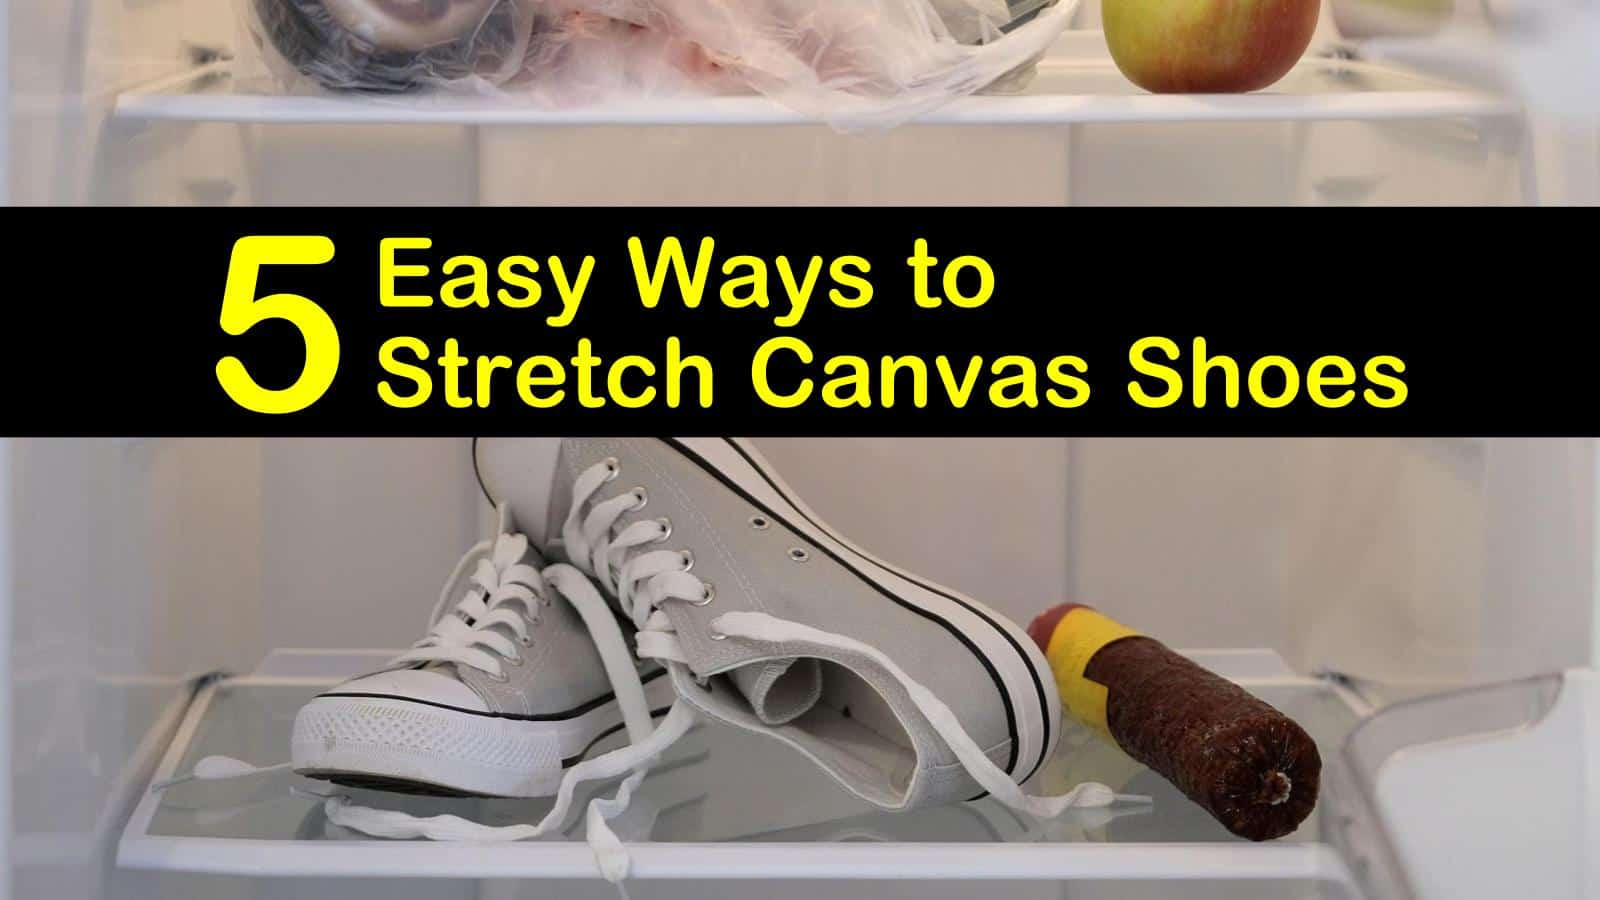 5 Easy Ways to Stretch Canvas Shoes